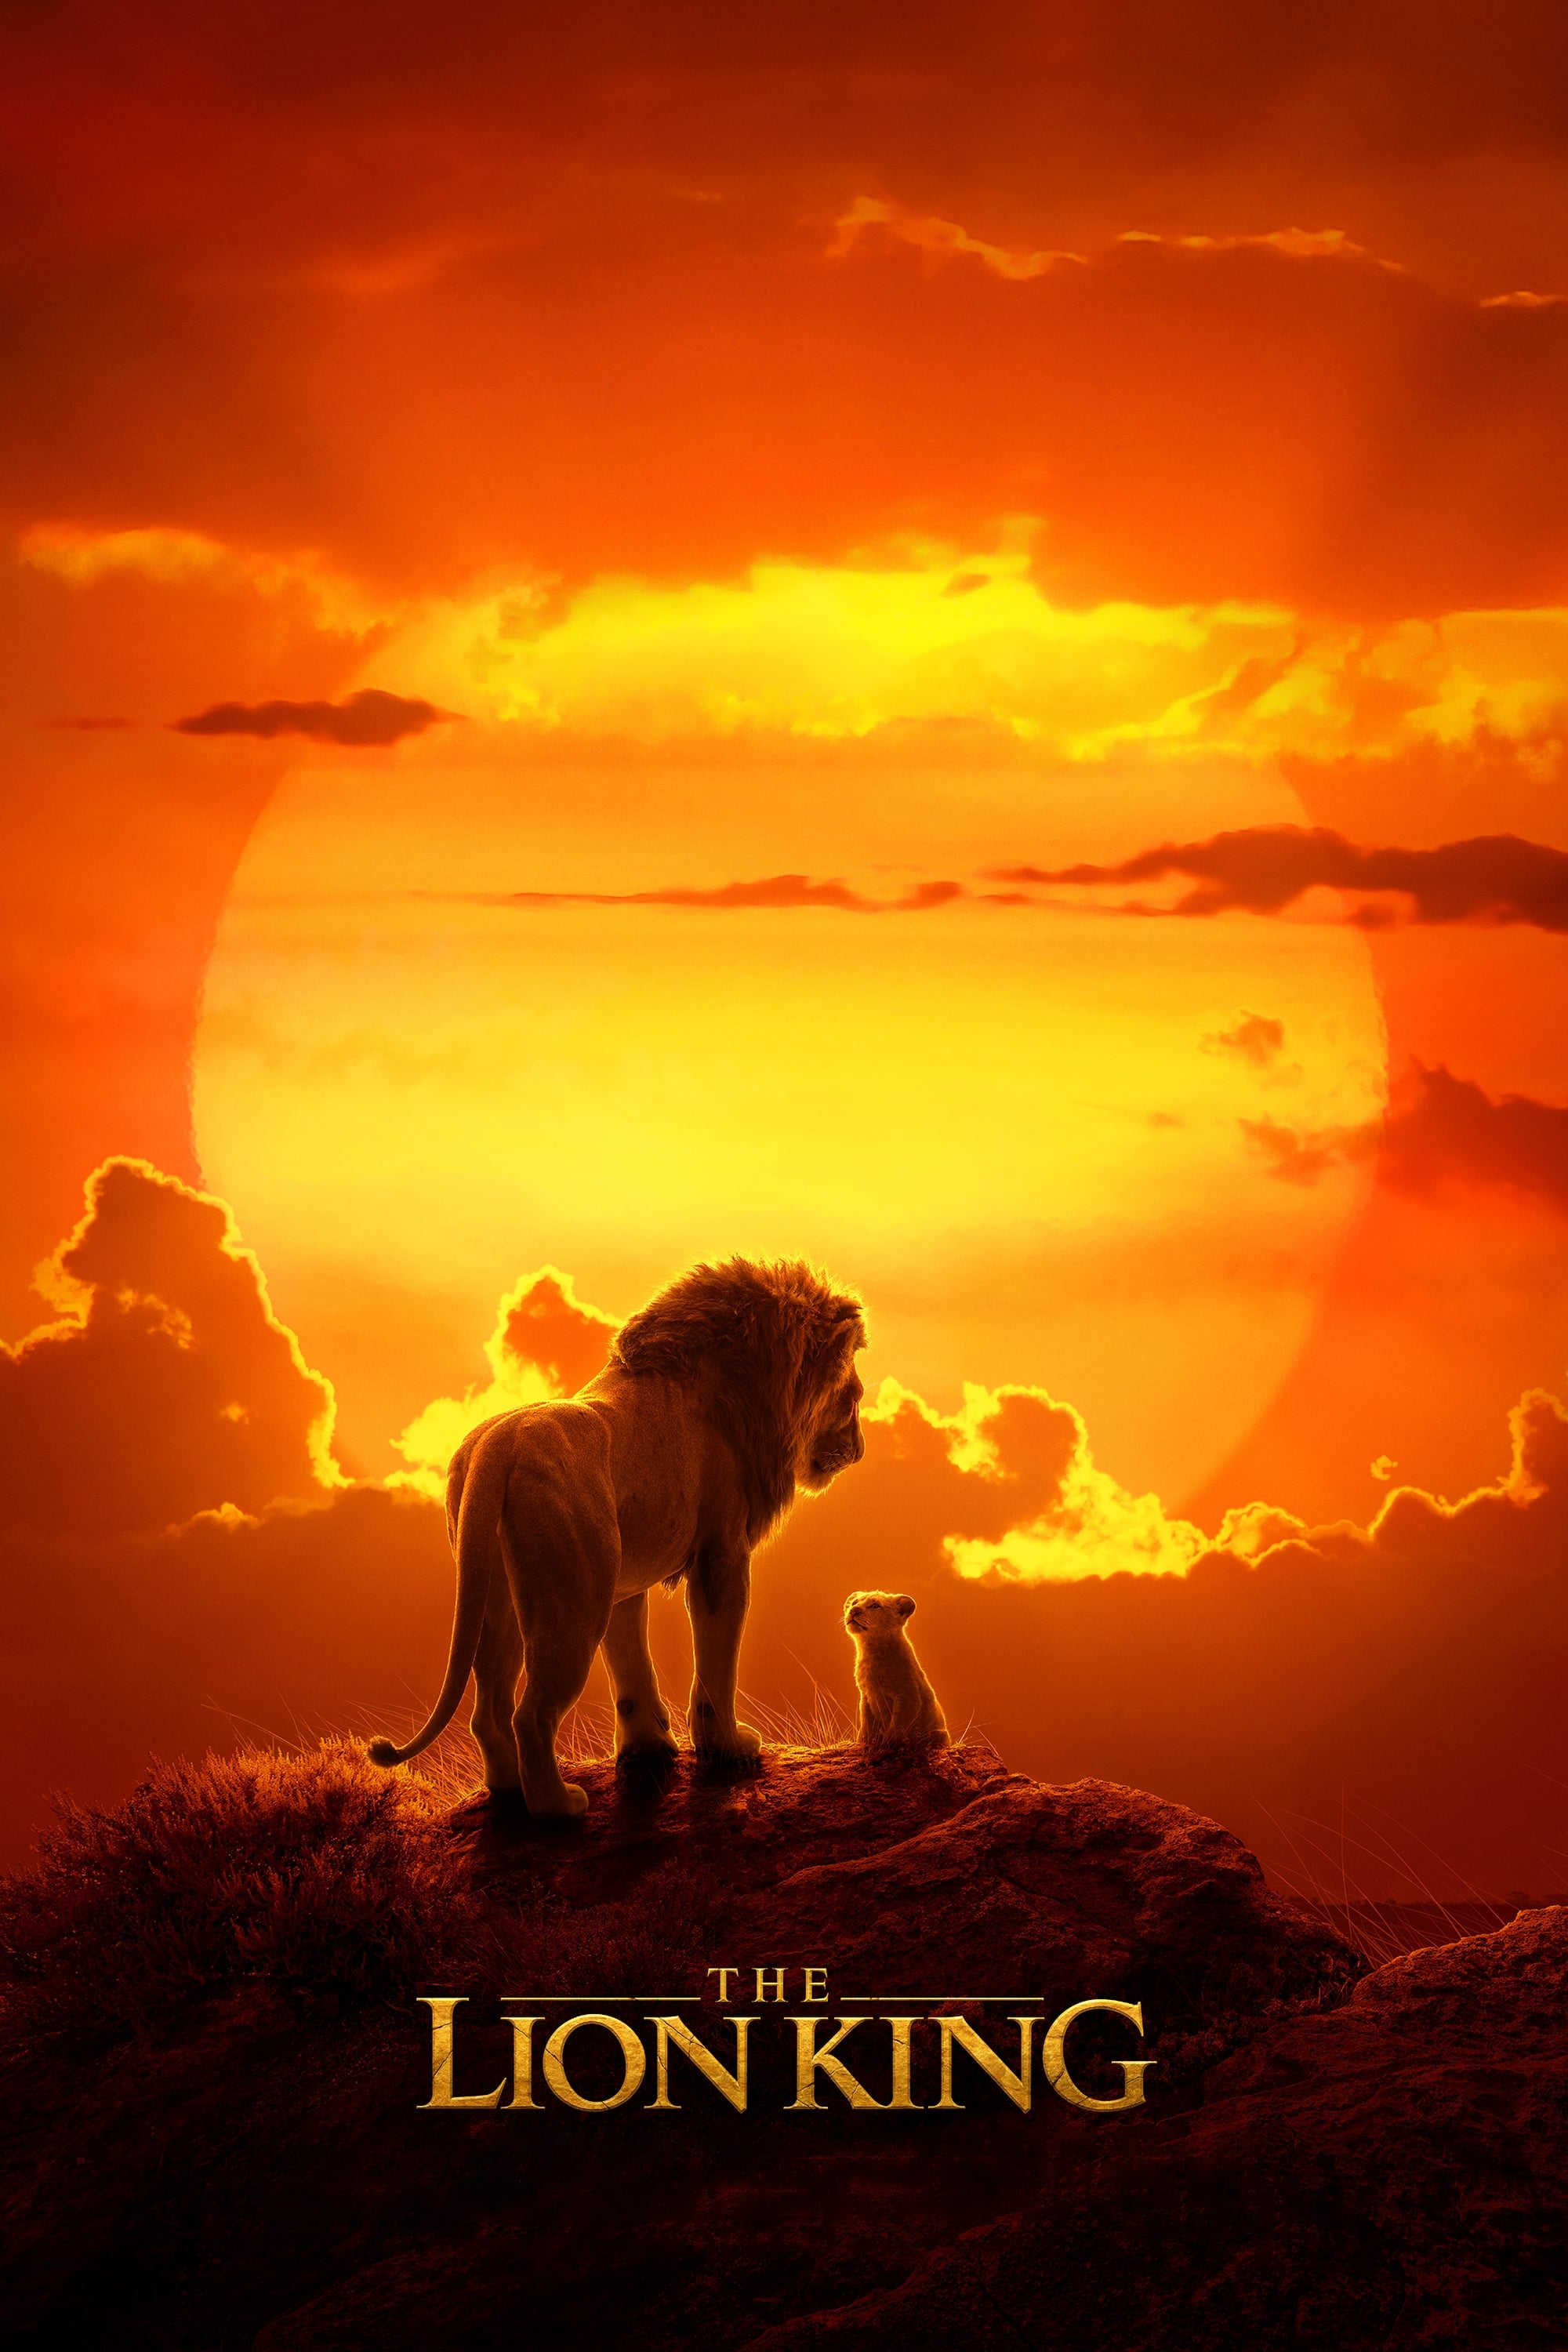 the lion king movie 2019 reviews